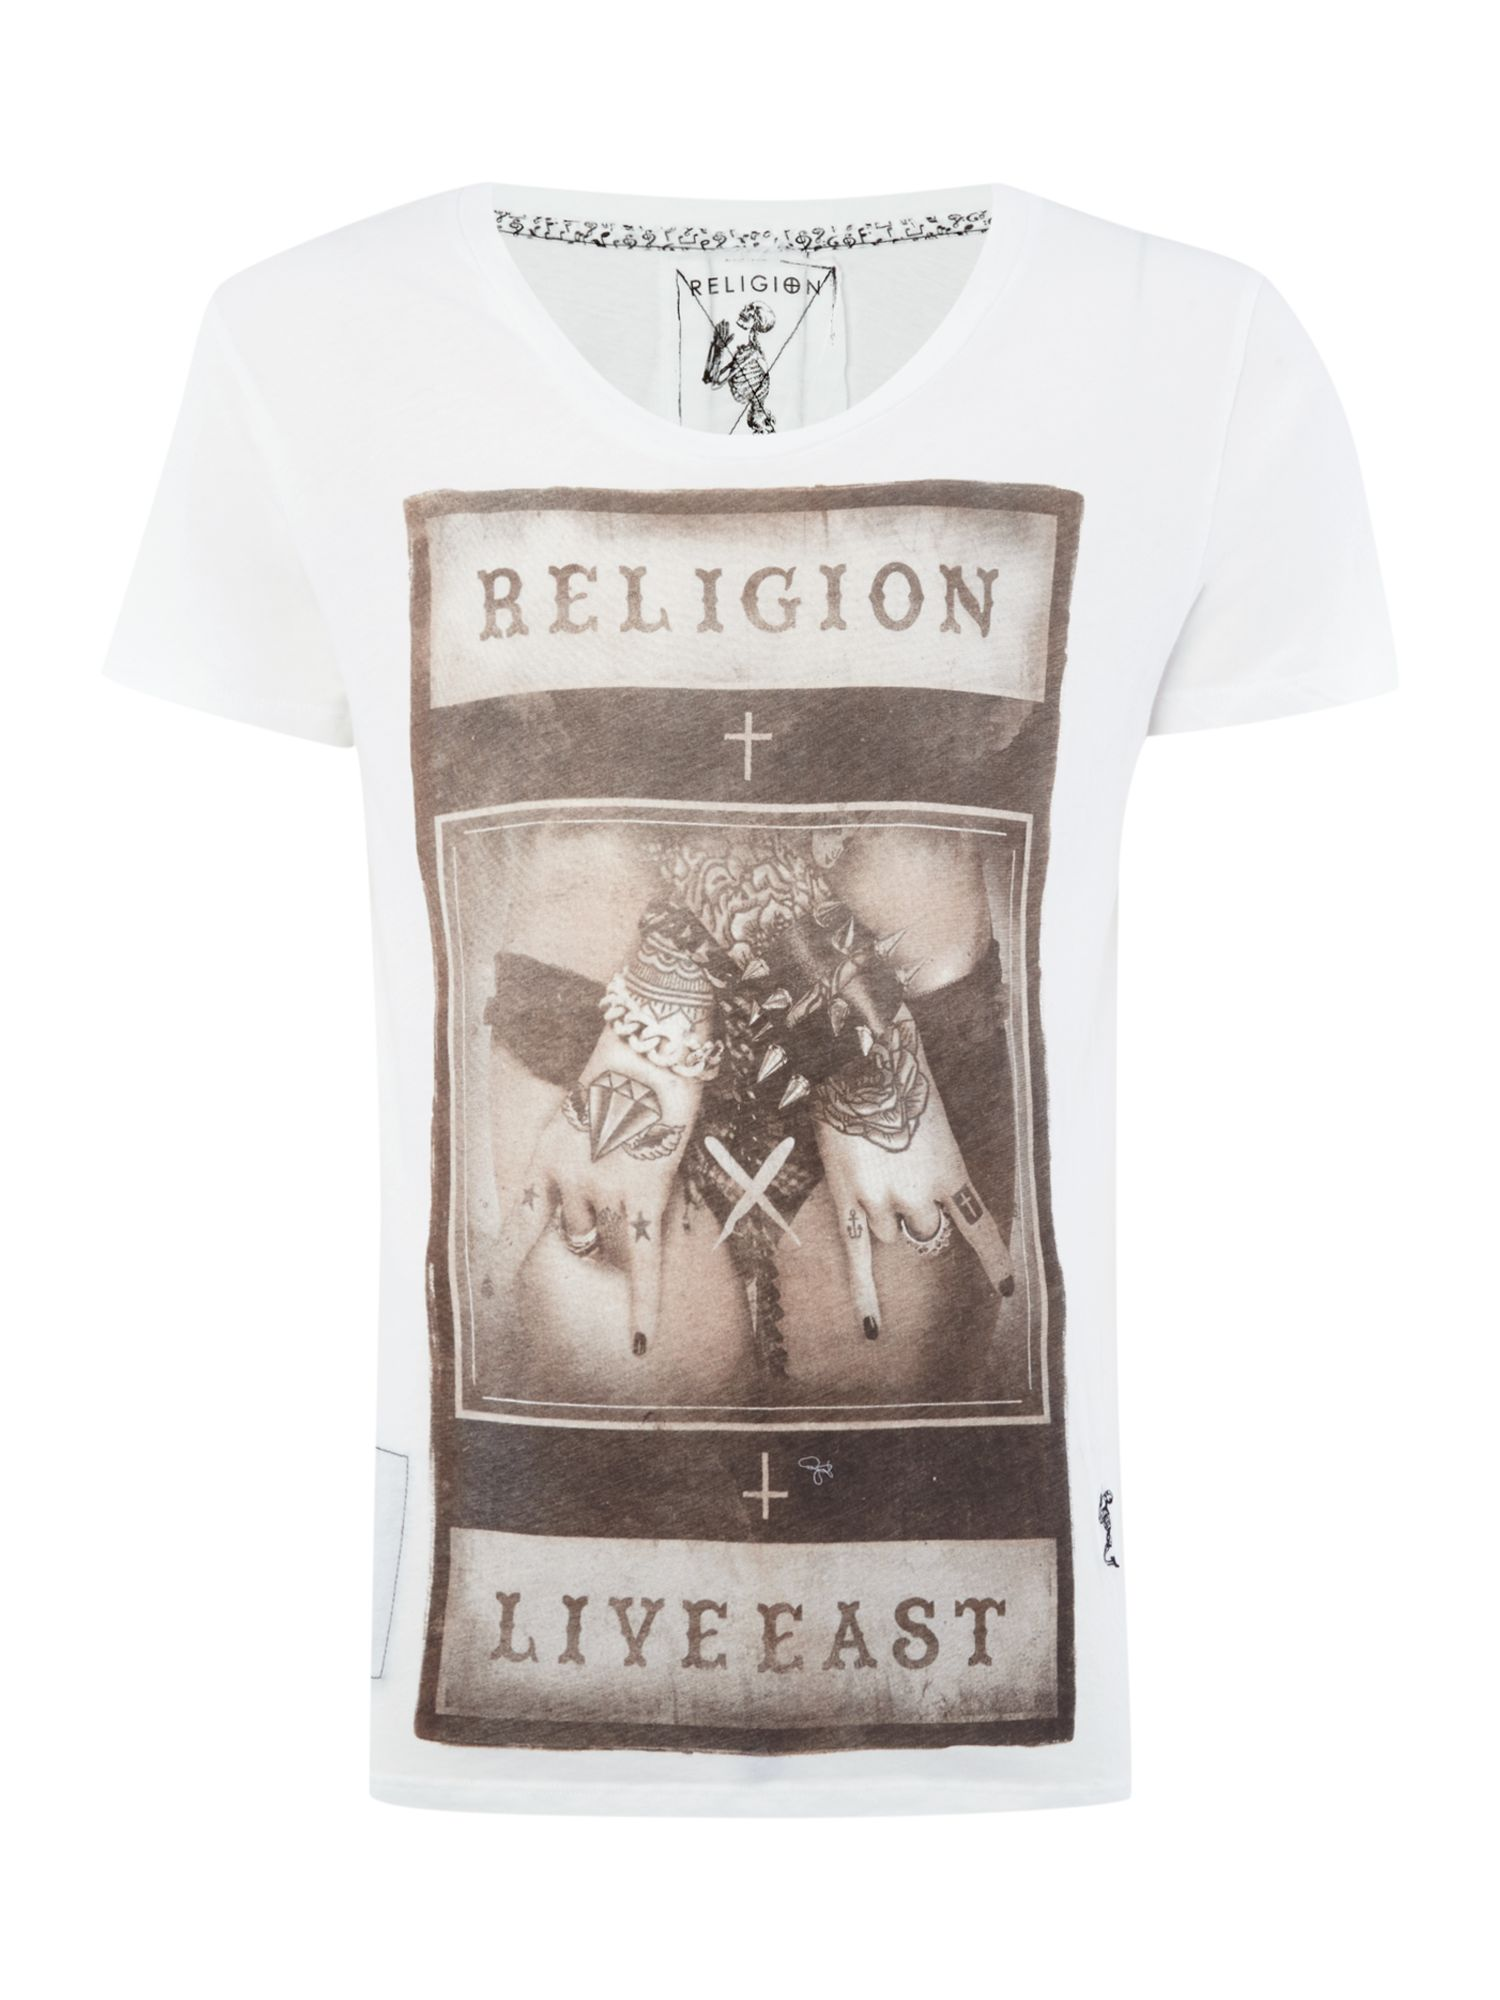 Rock printed t shirt